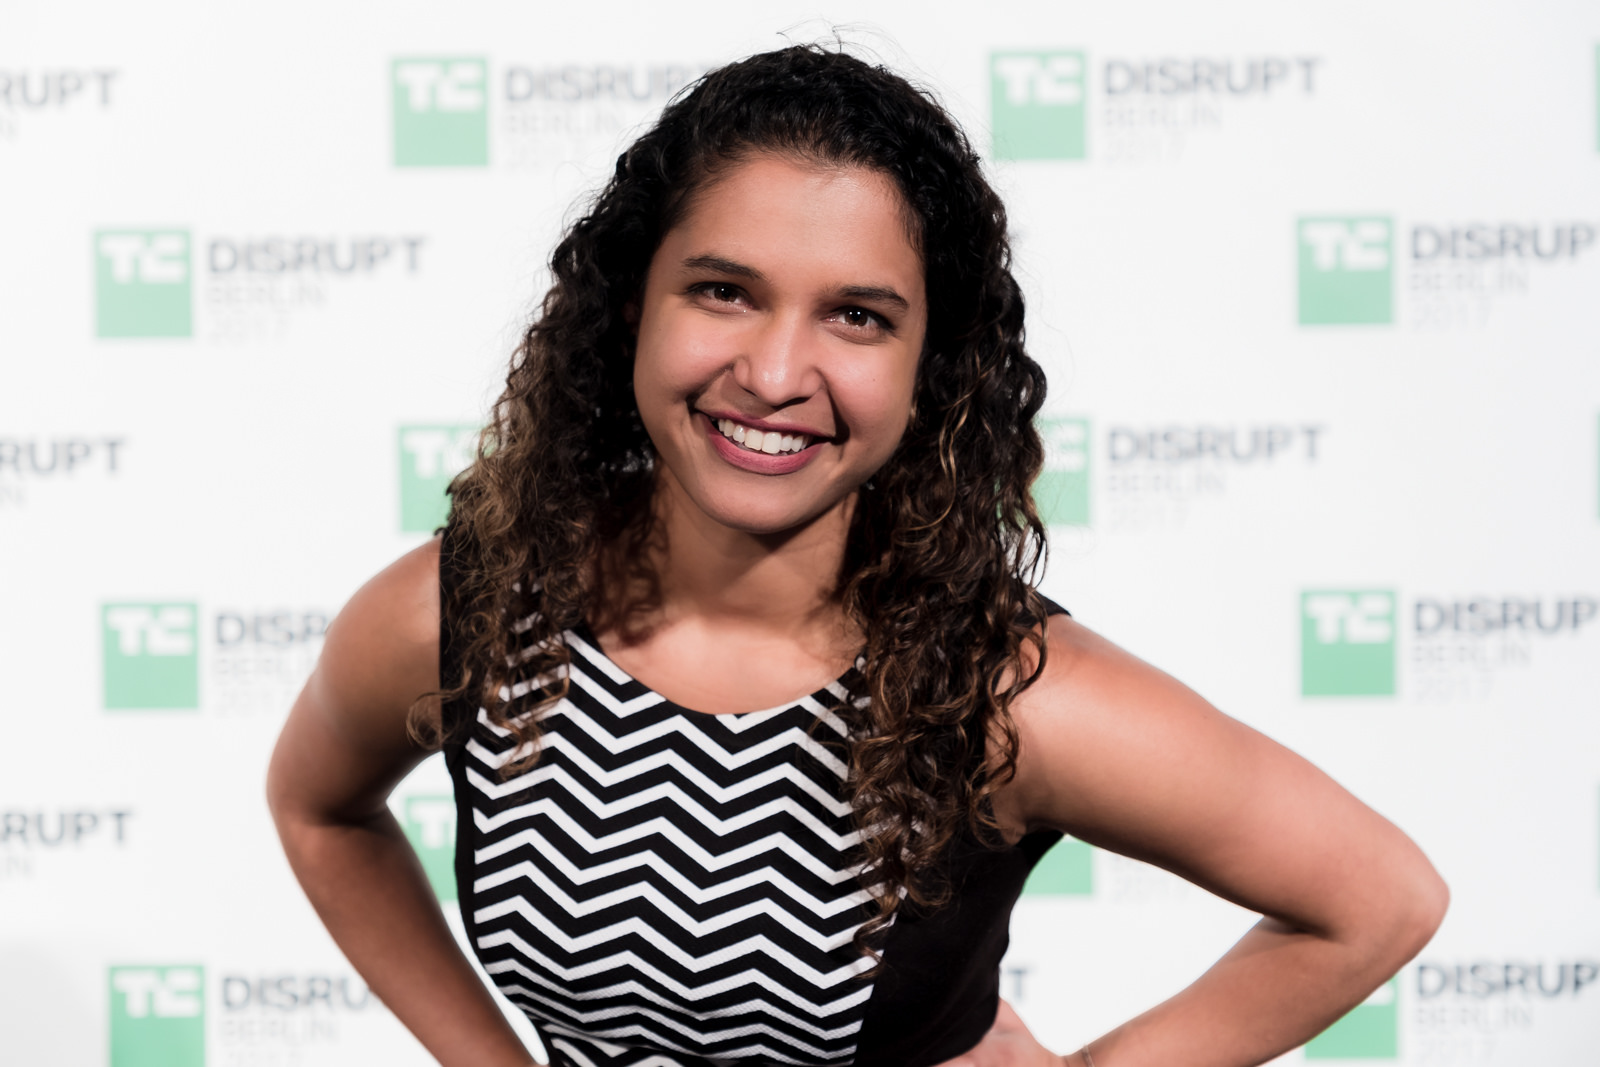 Neesha A Tambe - Head of Startup Battlefield Global // Chairwoman, Parks and Recreations Commission@ TechCrunch // City of Cupertino